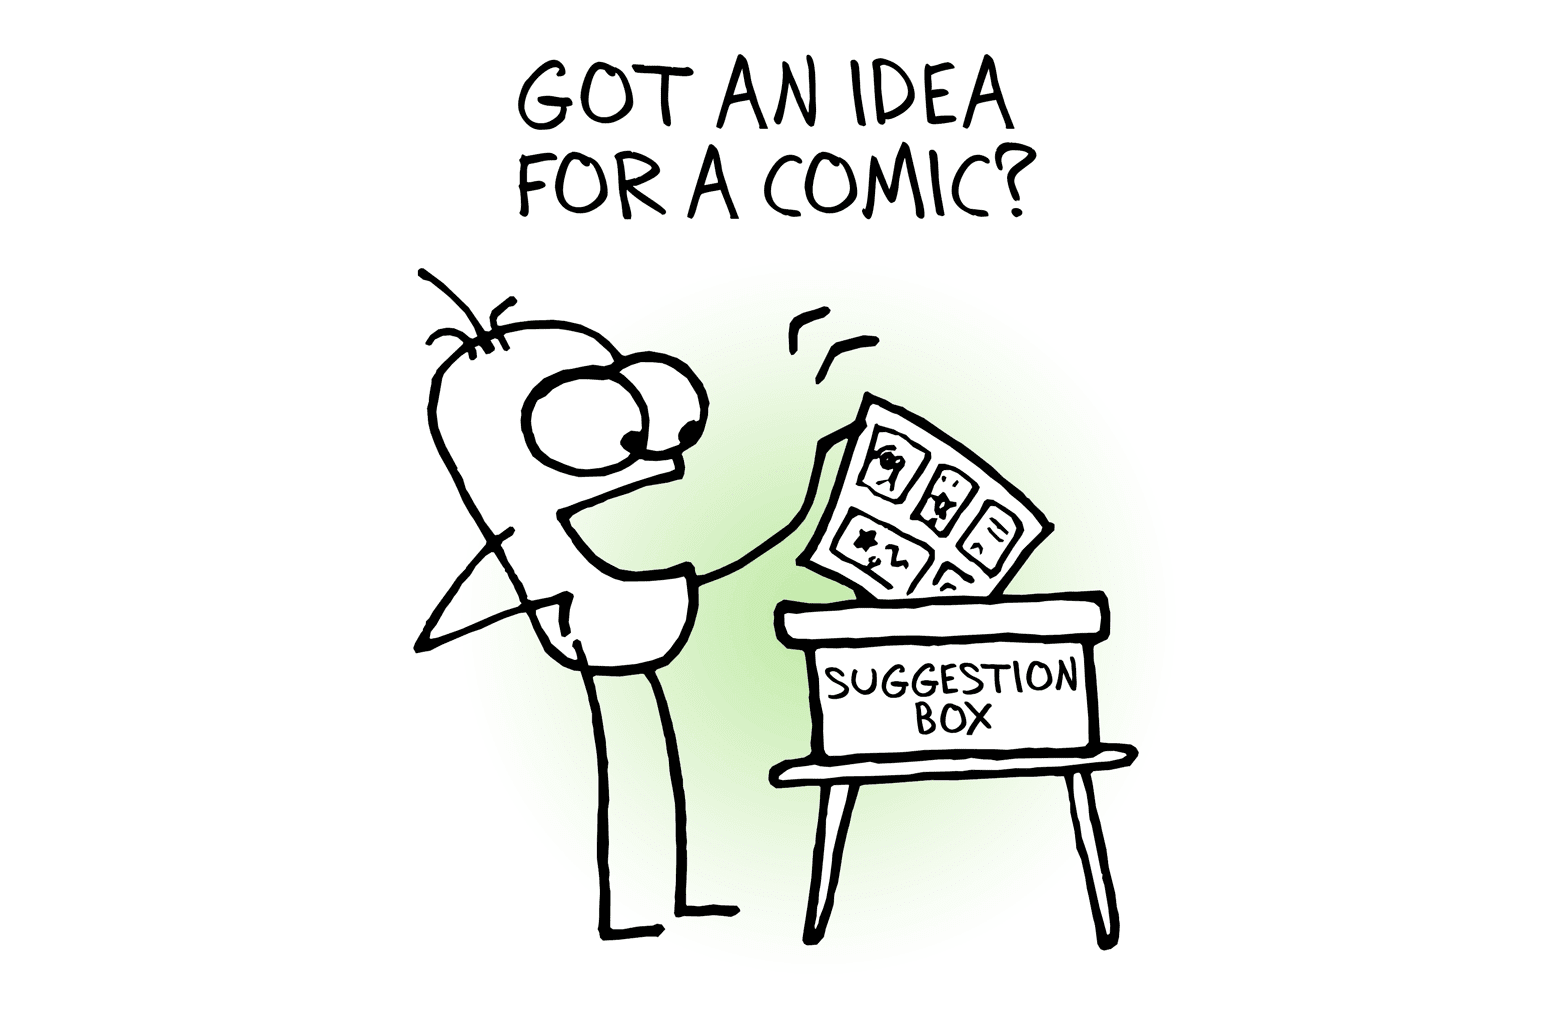 SUGGESTION BOX!